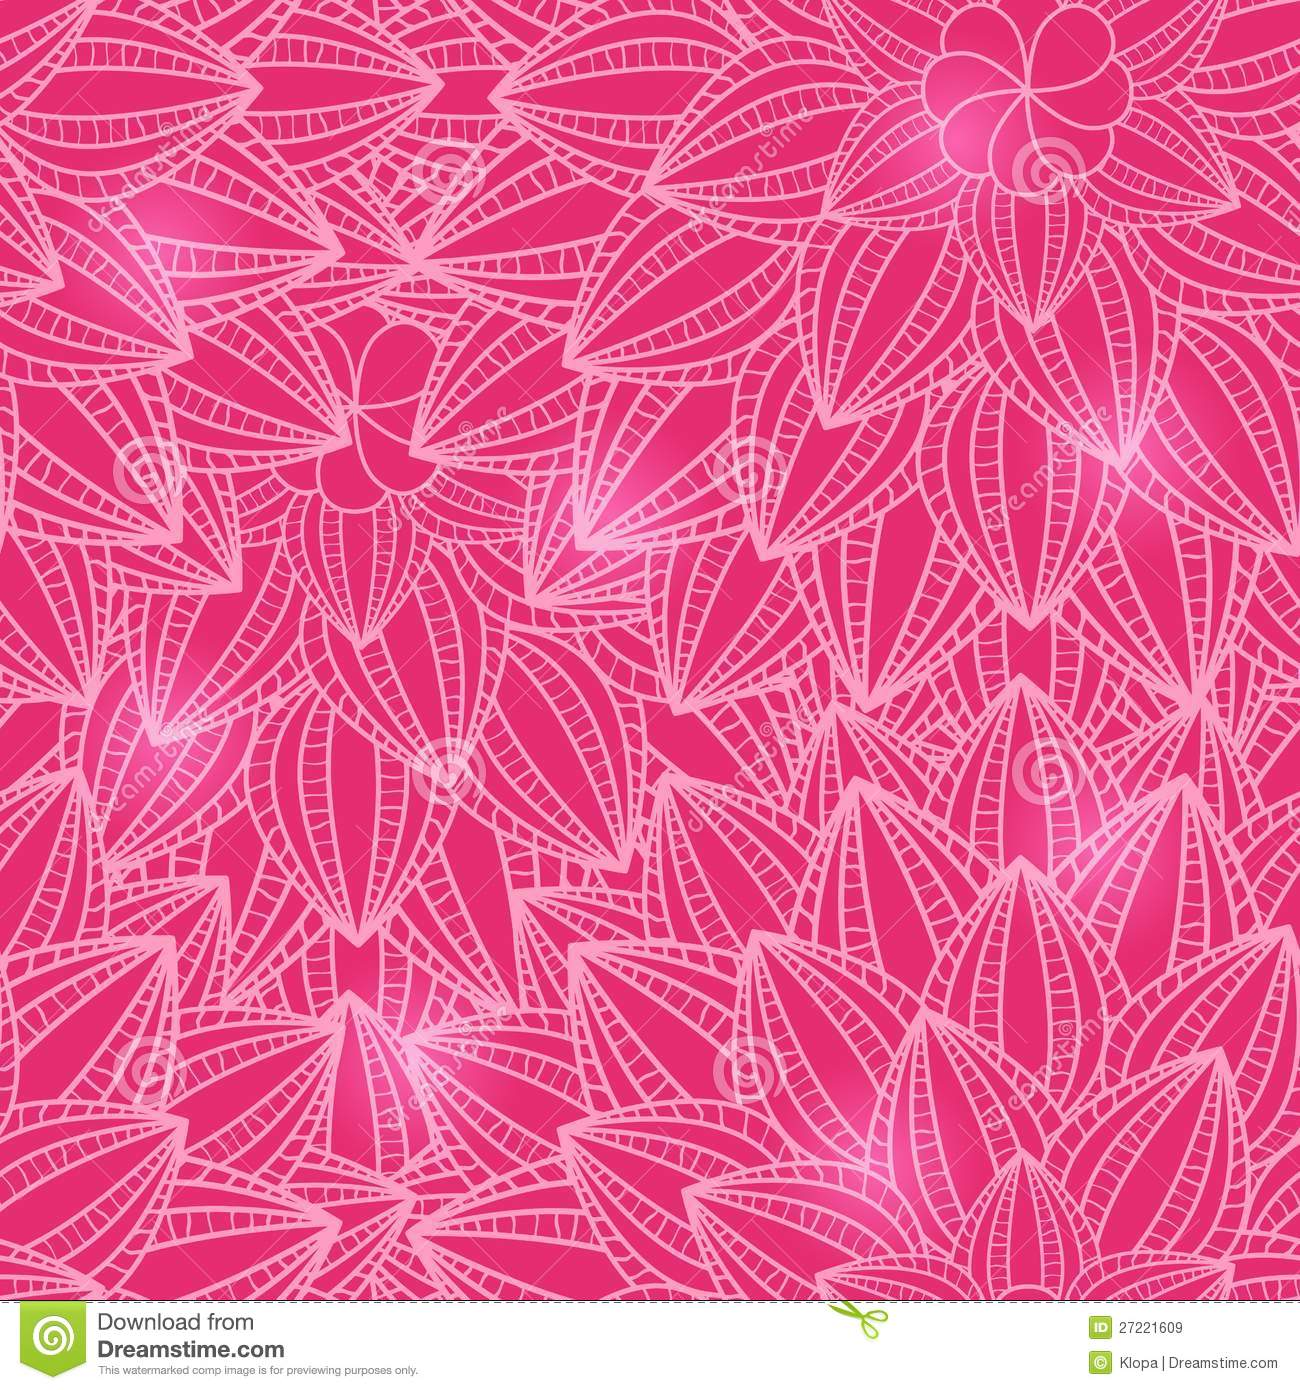 Seamless pink floral pattern - photo#19